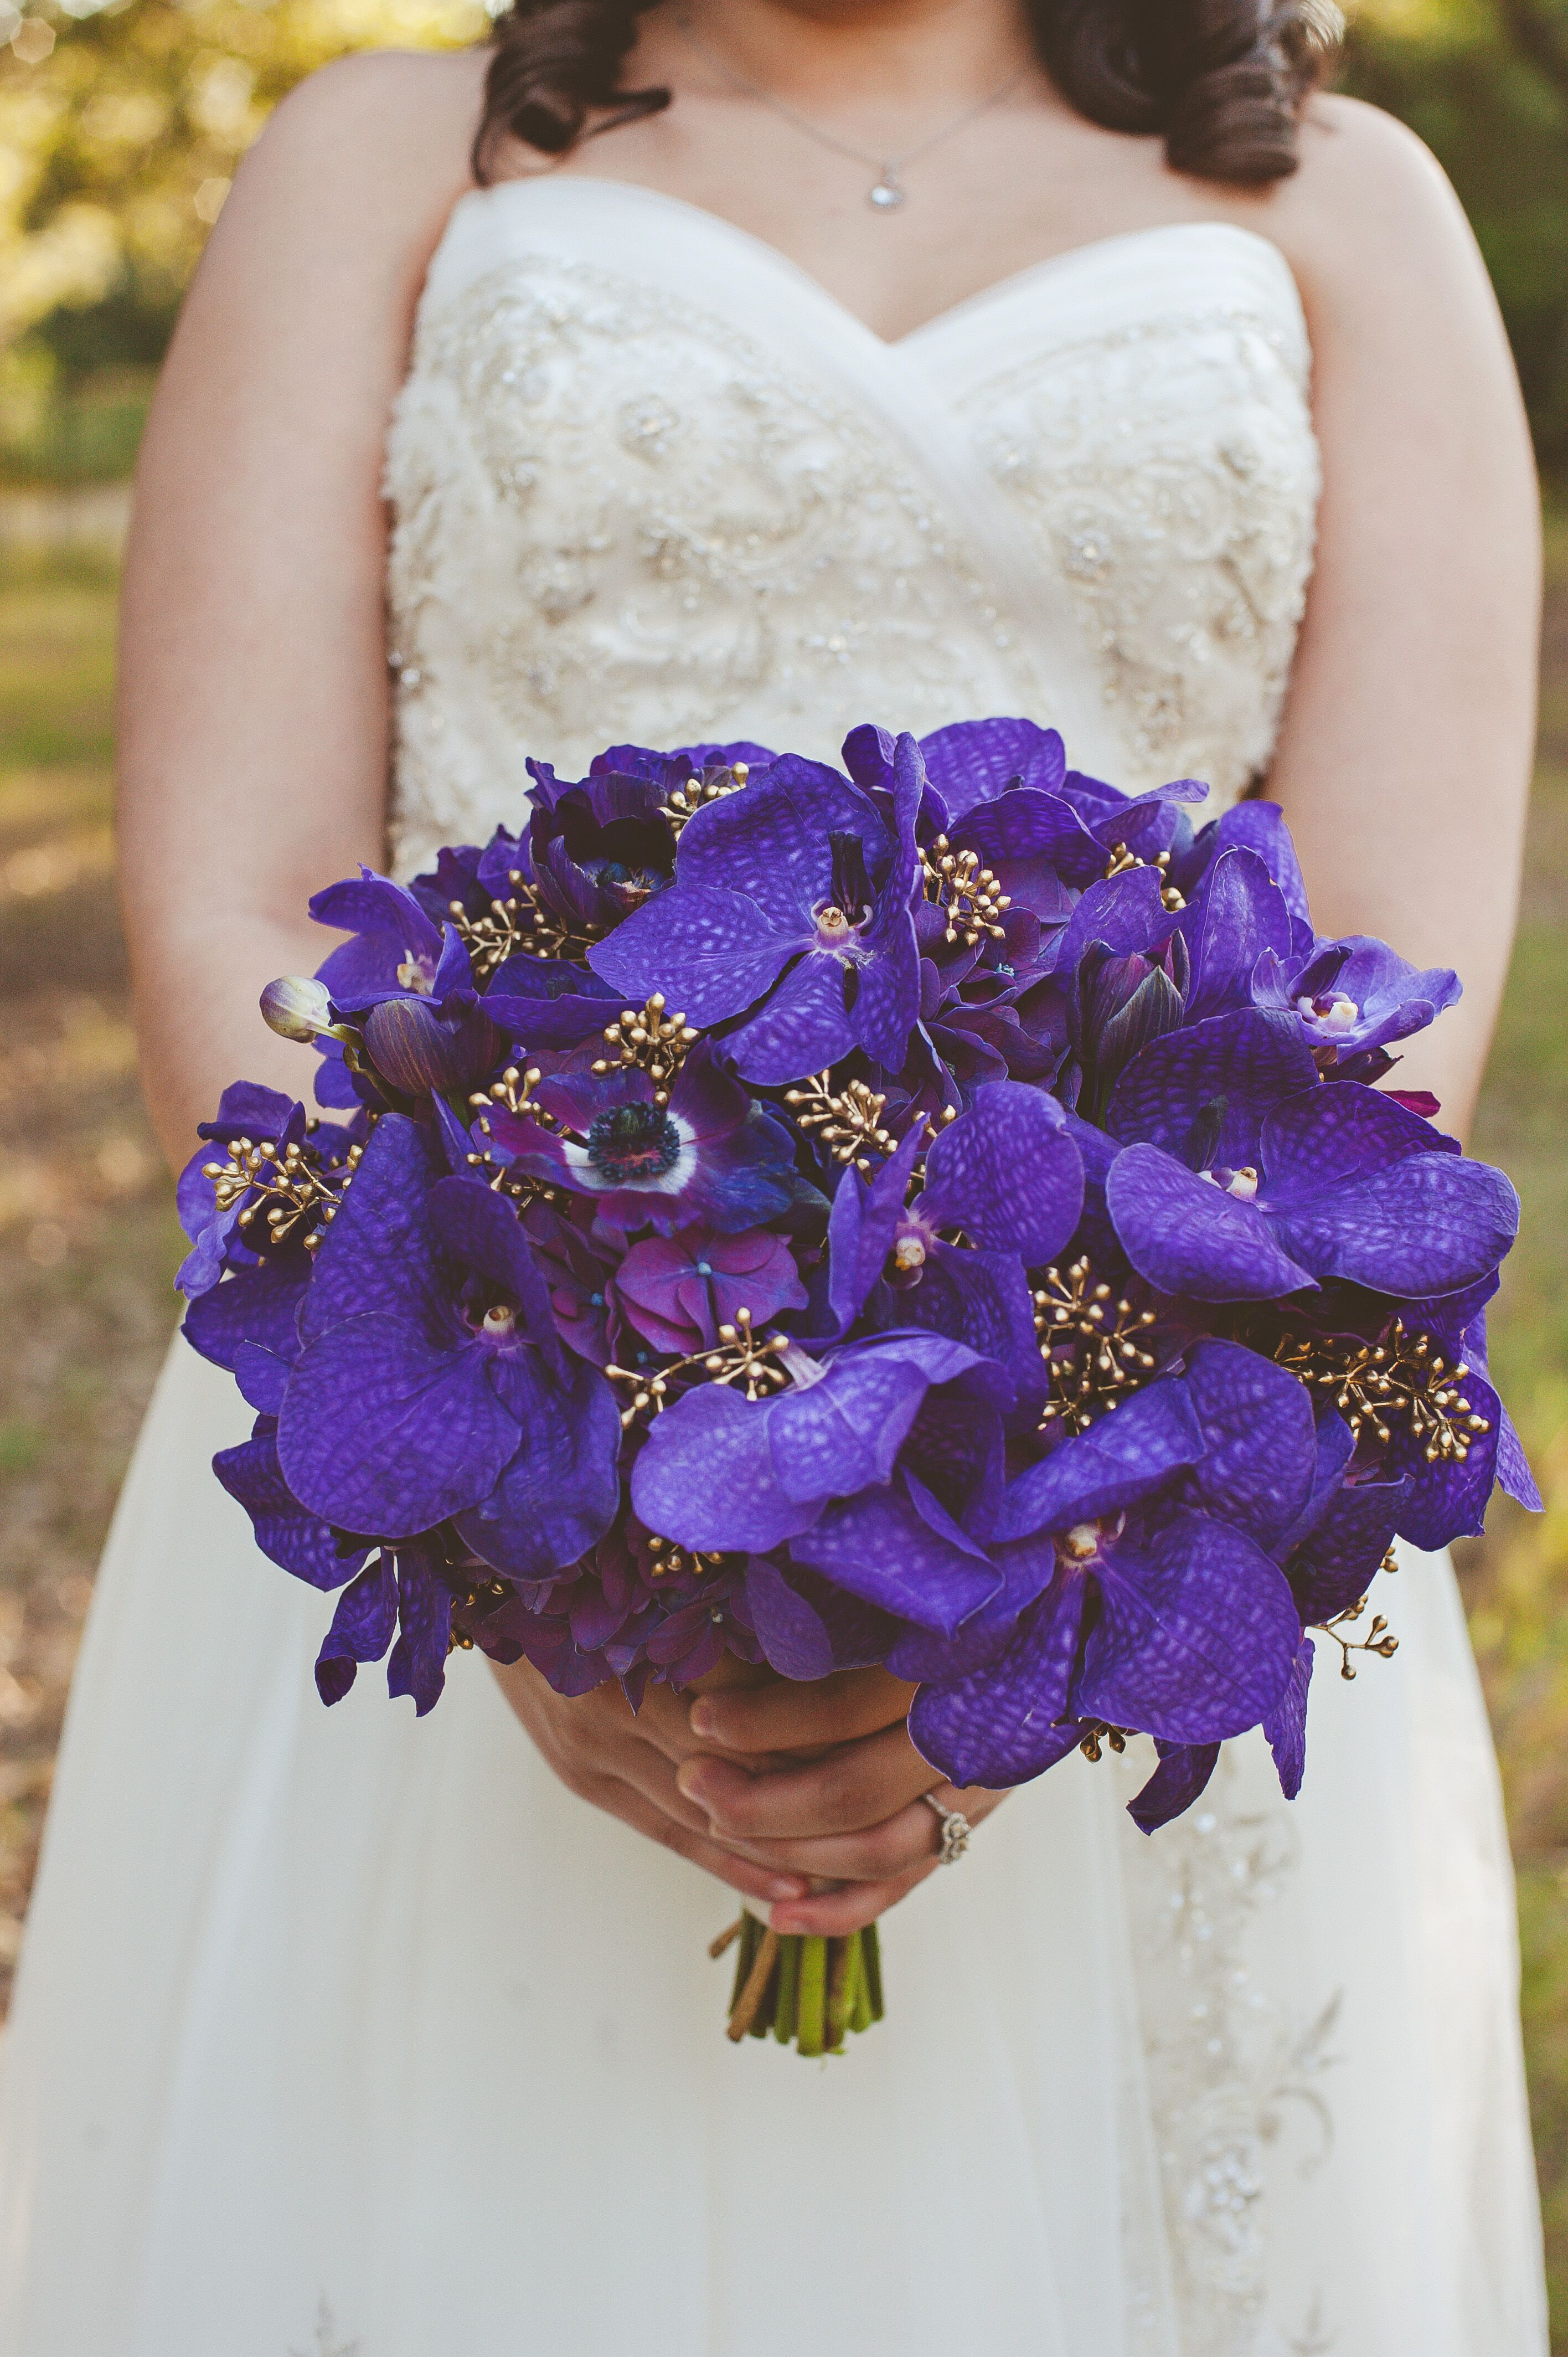 Purple wedding flower arrangements purple orchid and anemone bouquets izmirmasajfo Choice Image